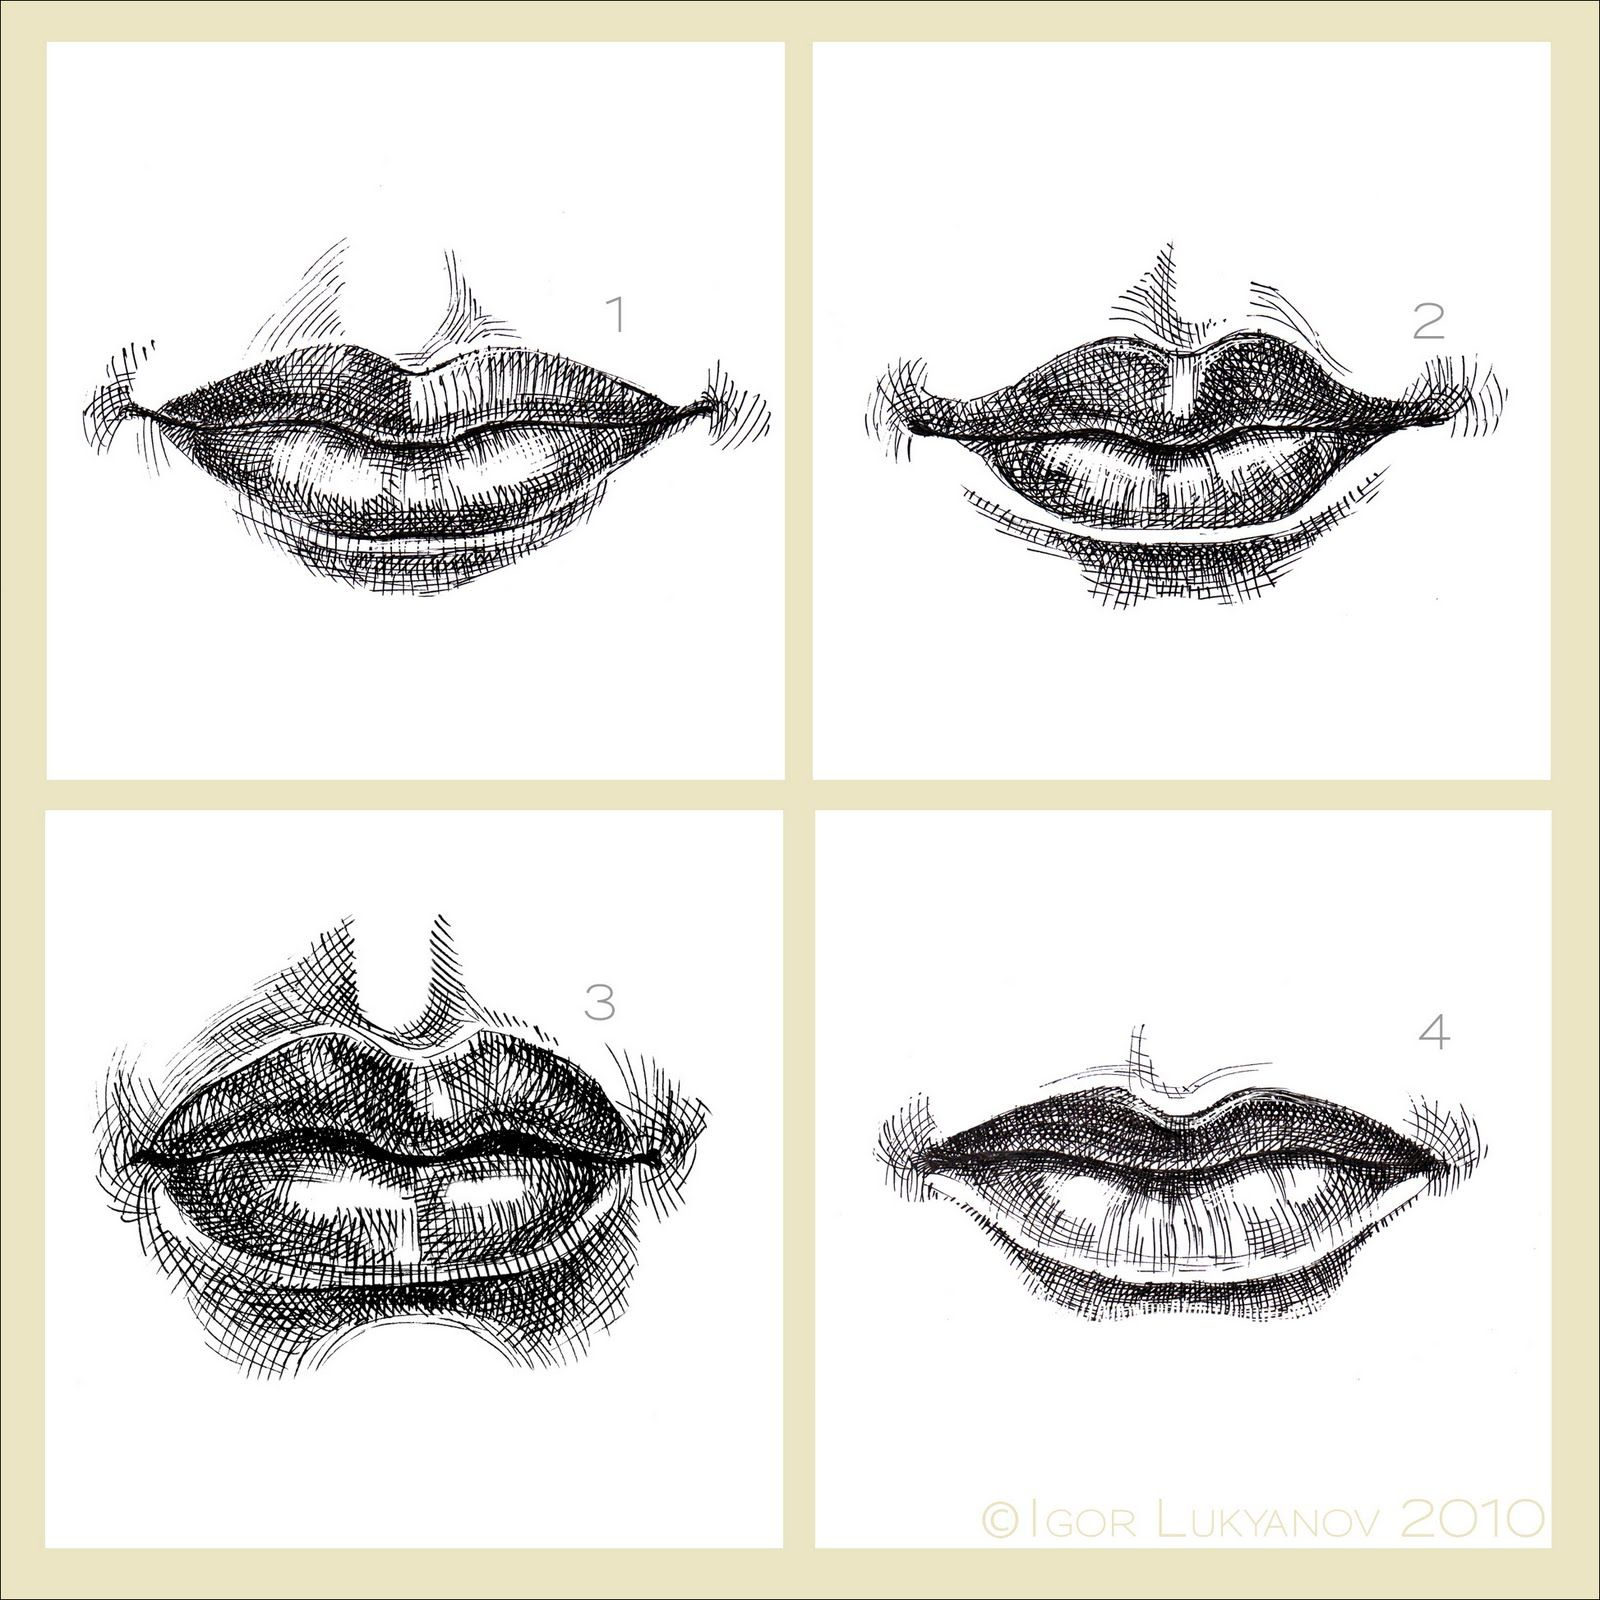 Realistic pencil drawings posts drawing a realistic human nose stencil style human eye drawing